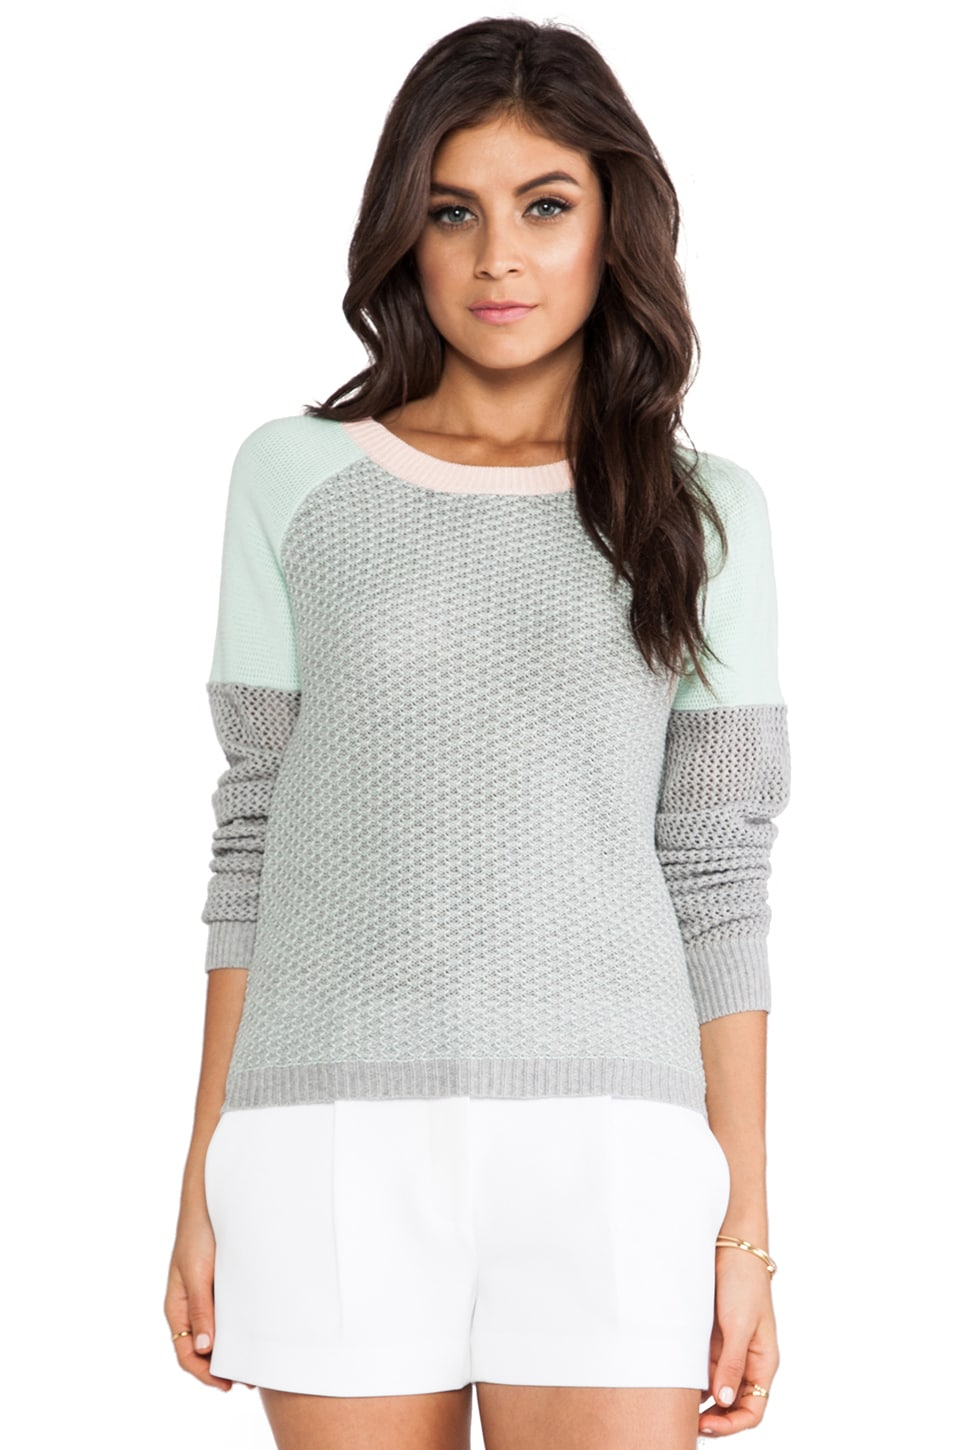 Greylin Dharma Hive Pullover Sweater in Mint